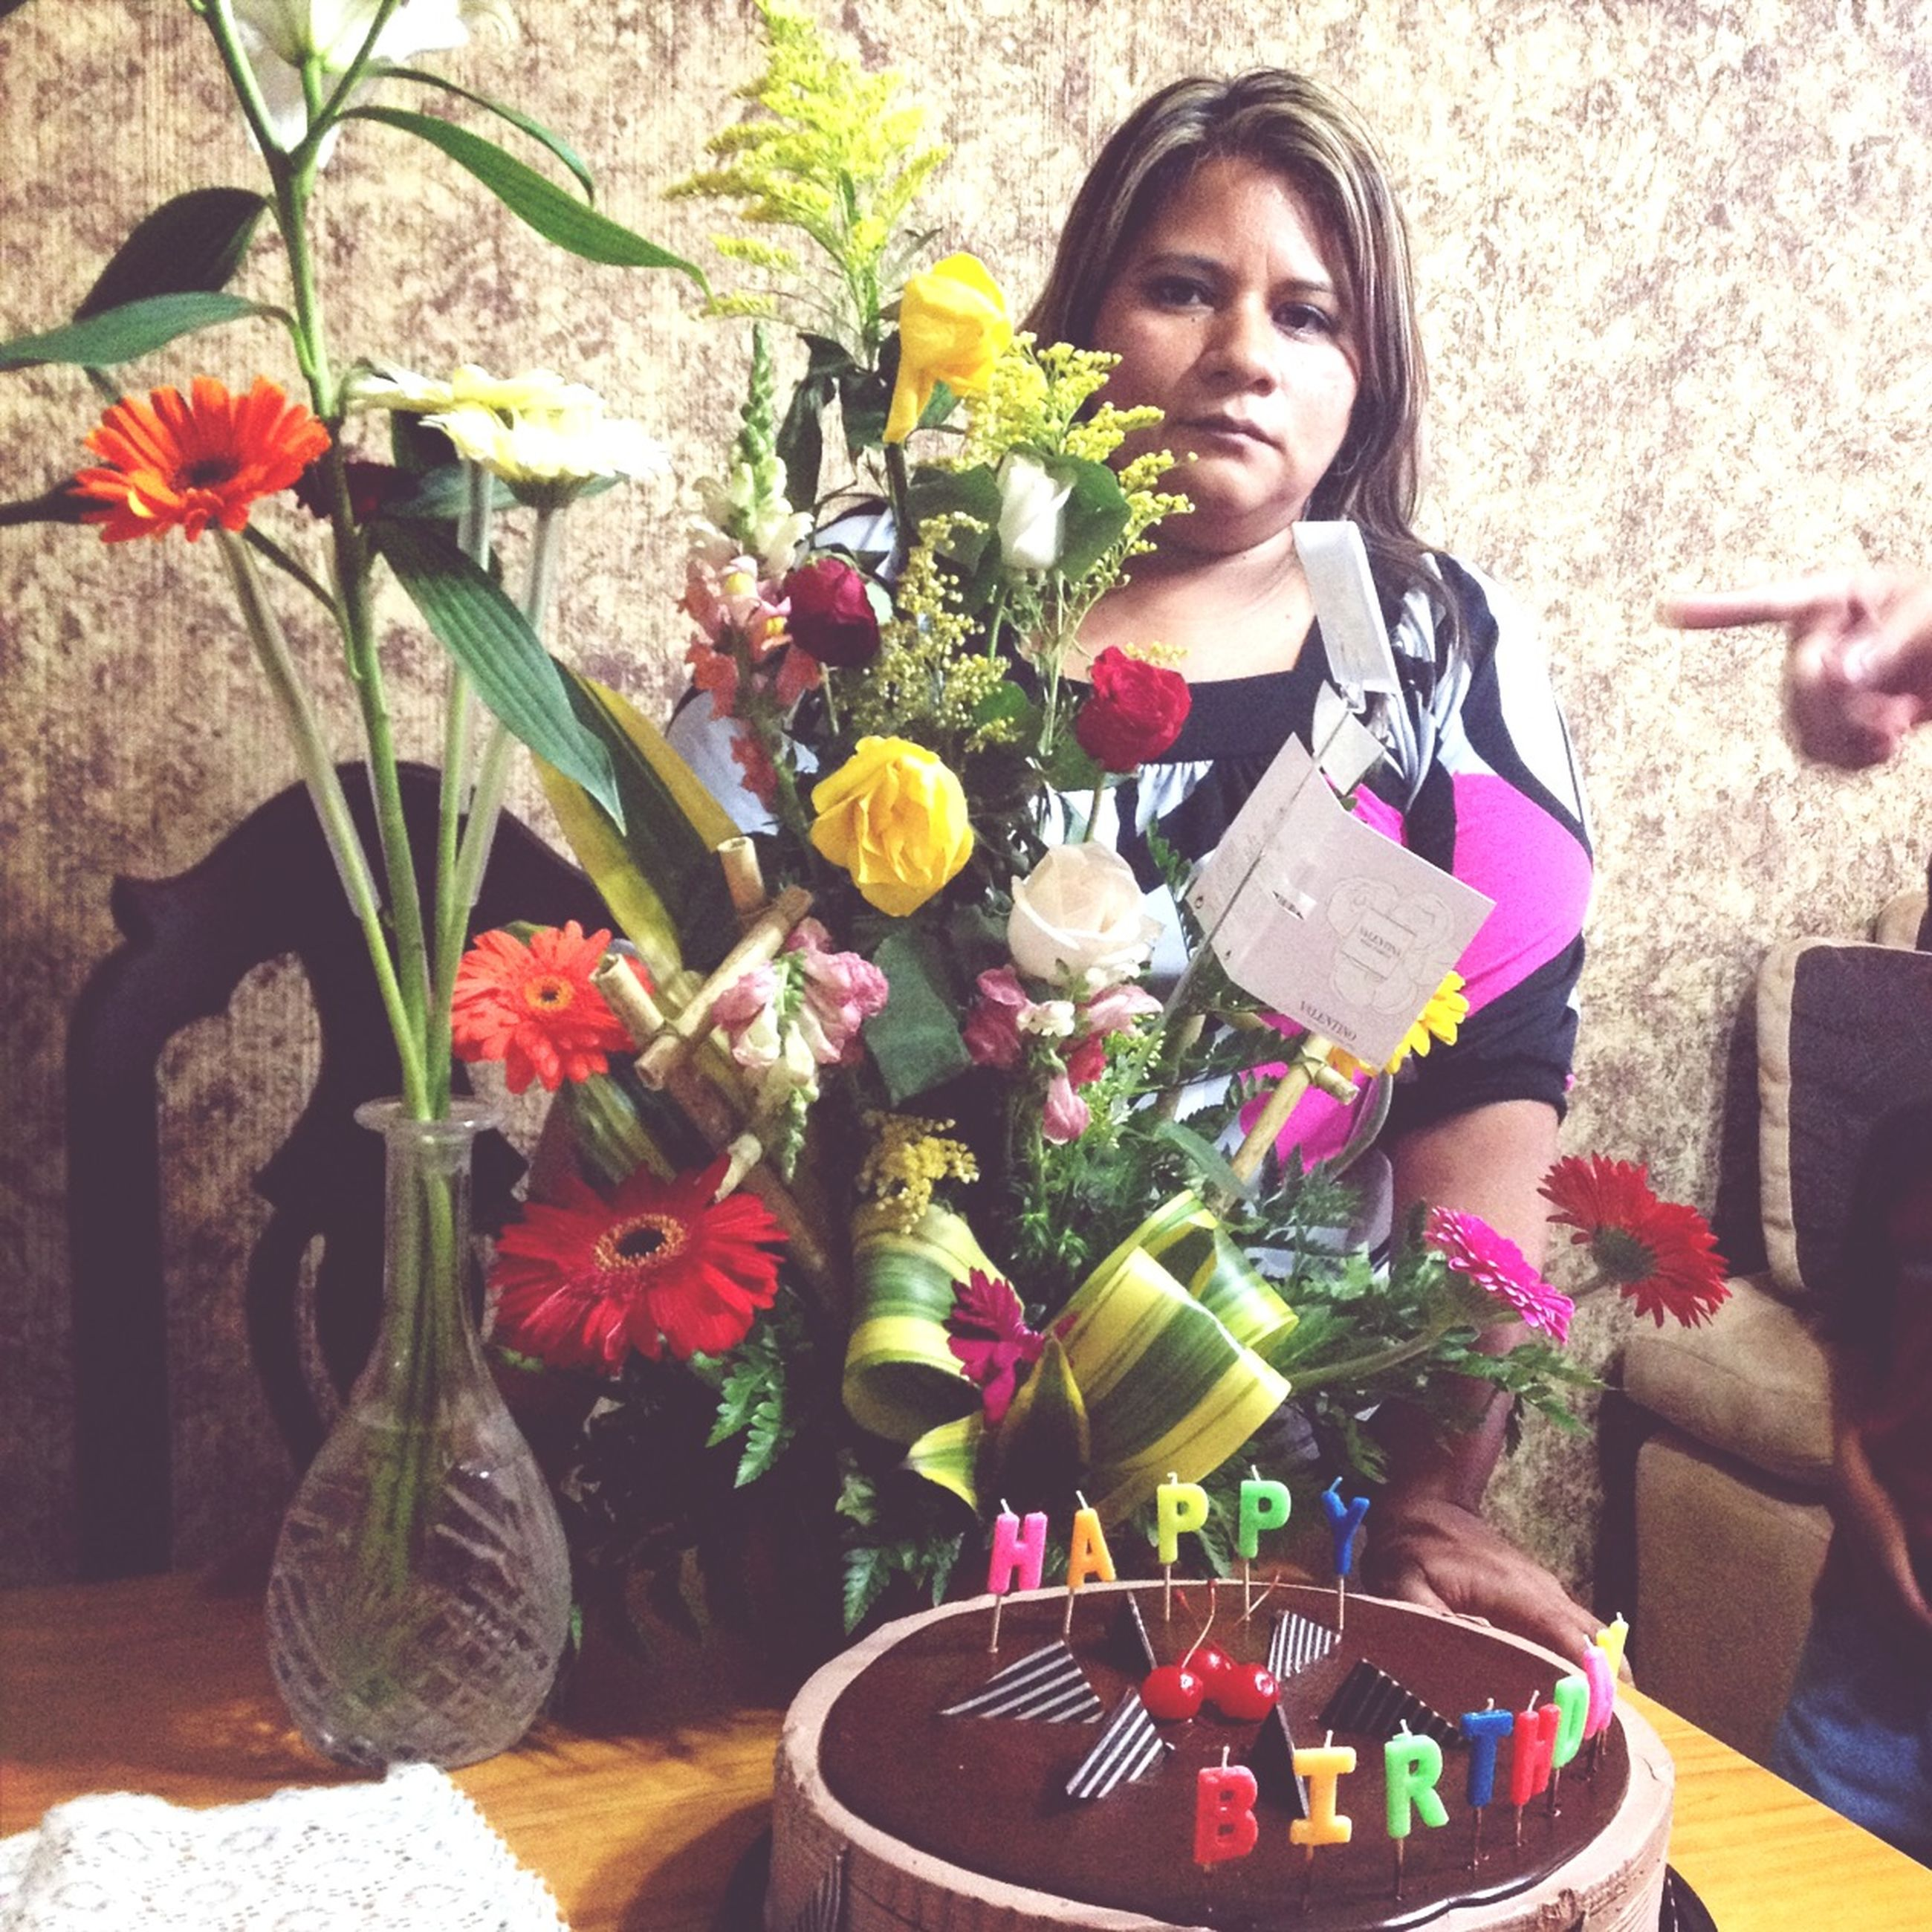 lifestyles, flower, leisure activity, freshness, casual clothing, table, person, holding, sitting, food and drink, indoors, elementary age, childhood, standing, front view, girls, smiling, bouquet